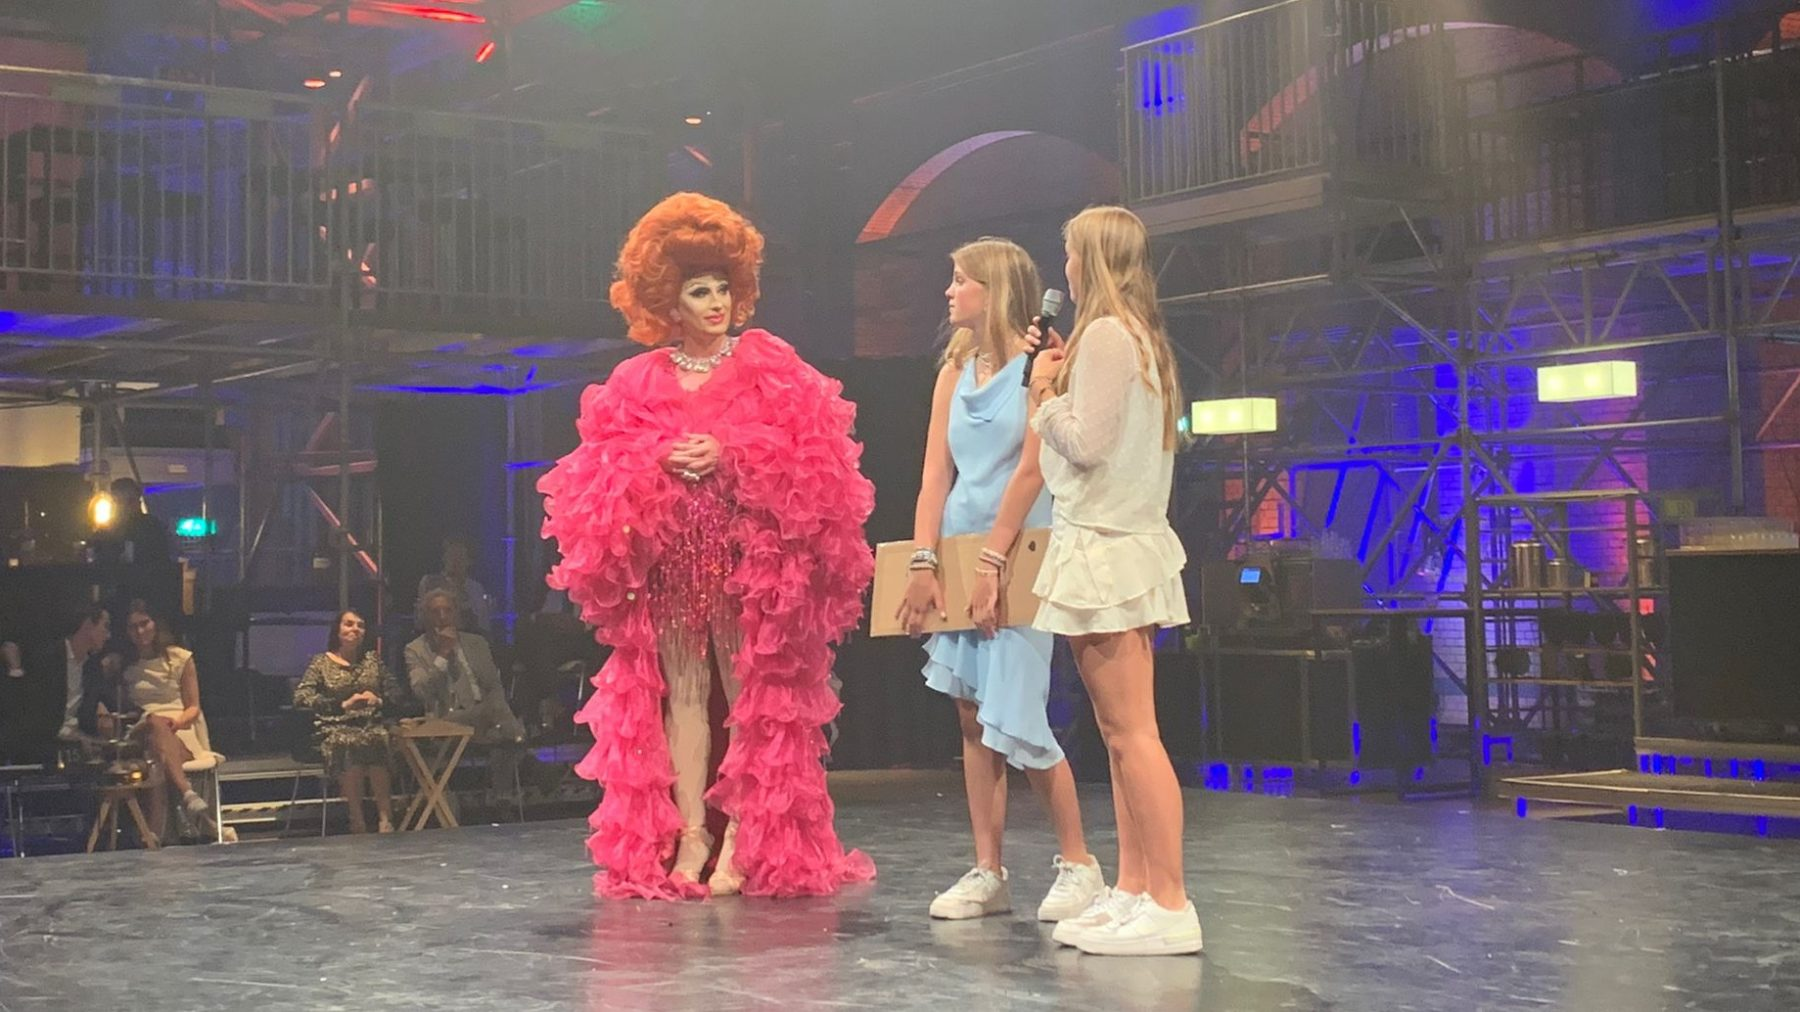 The Rotterdam Dragshow